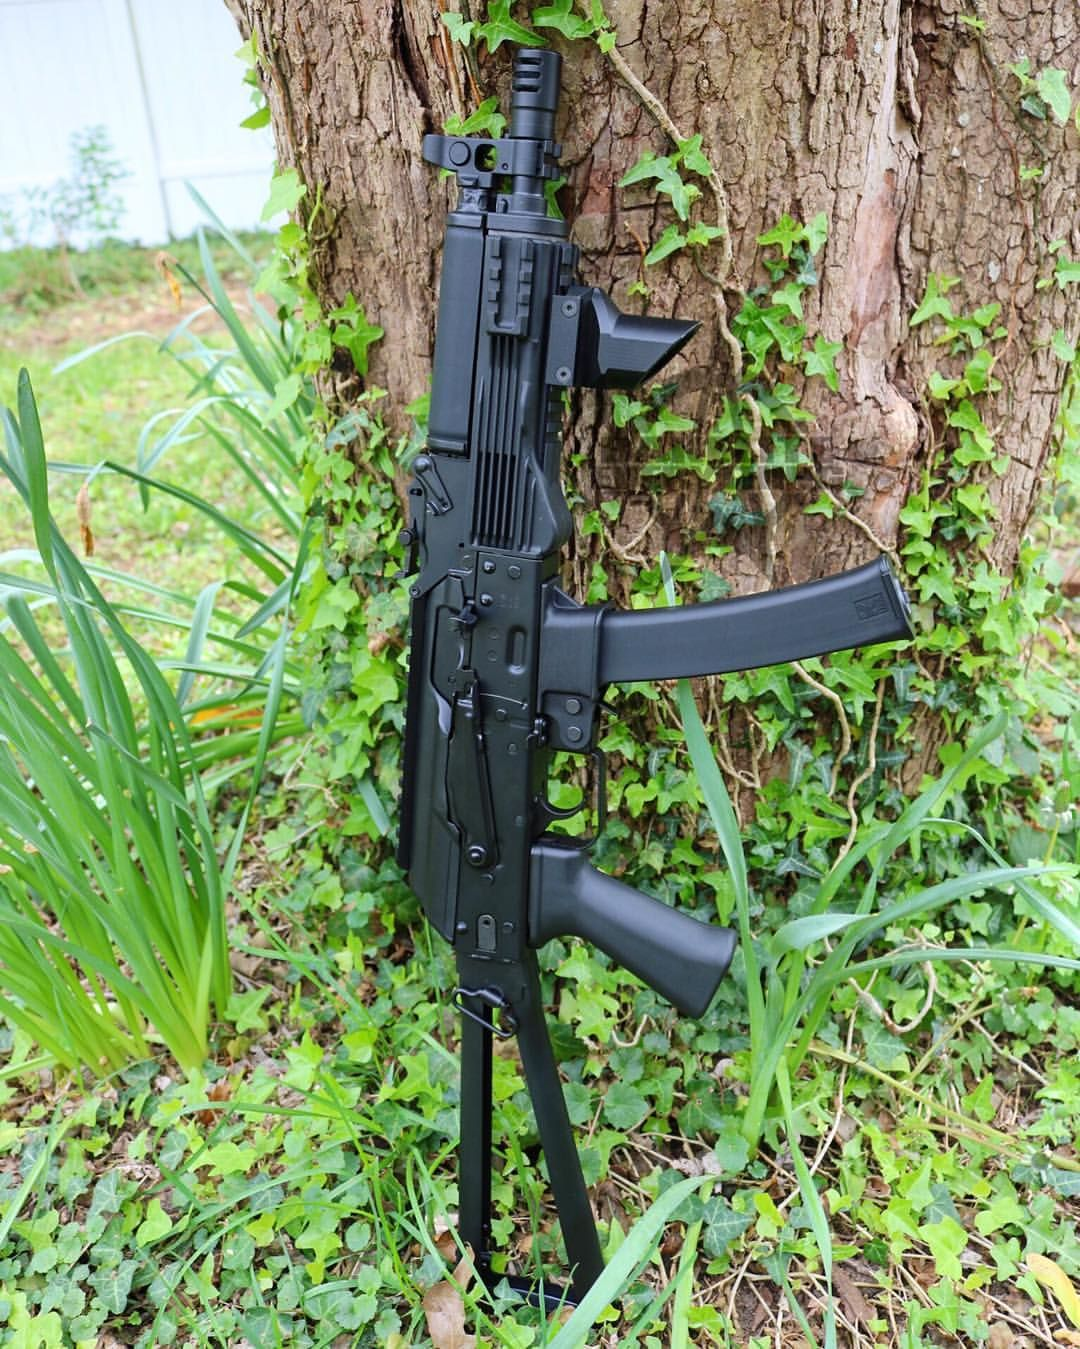 Fitted An Ak9 Handguard On The Kalashnikovusa Kp 9 And Put A Zenitco Official Rk 6 Foregrip On It Talk About Controllability In 2020 Guns Instagram Firearms